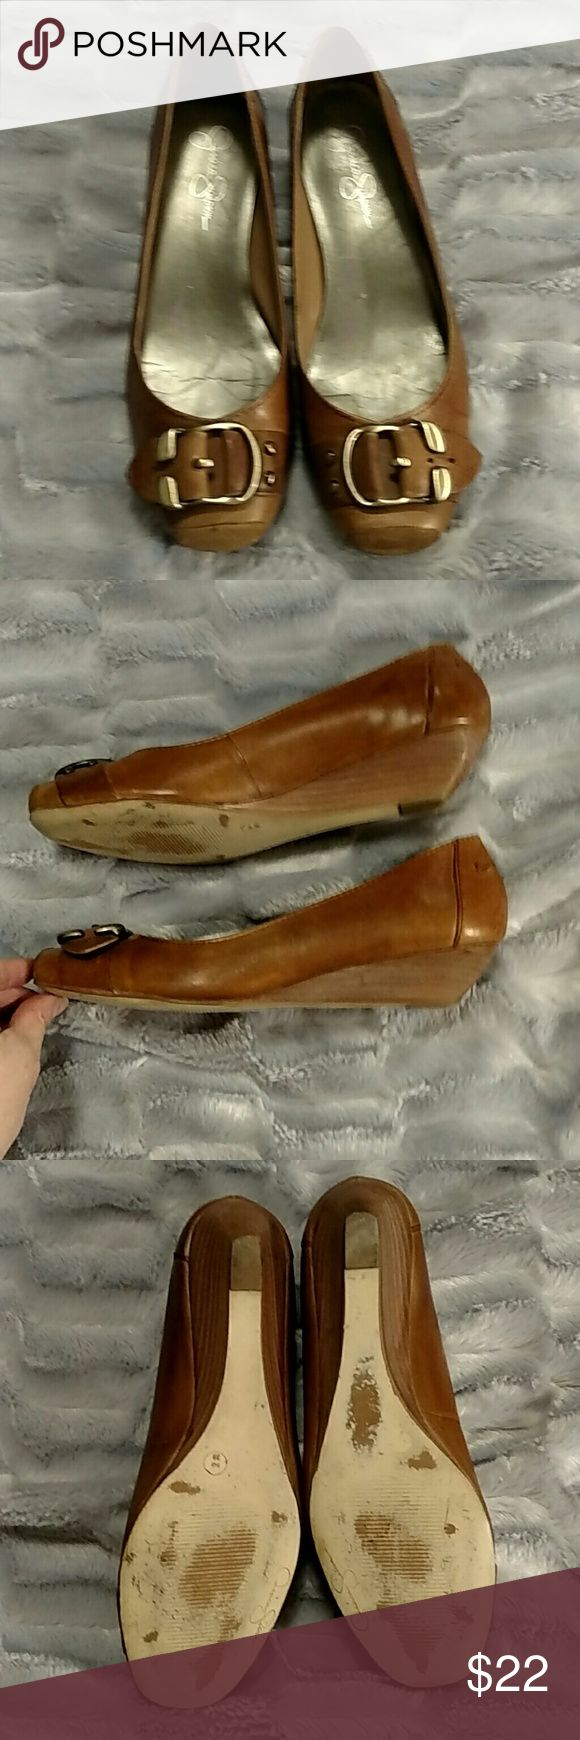 Jessica Simpson tan Buckle wedge shoes 9 m Gently worn Leather Jessica Simpson Shoes Wedges